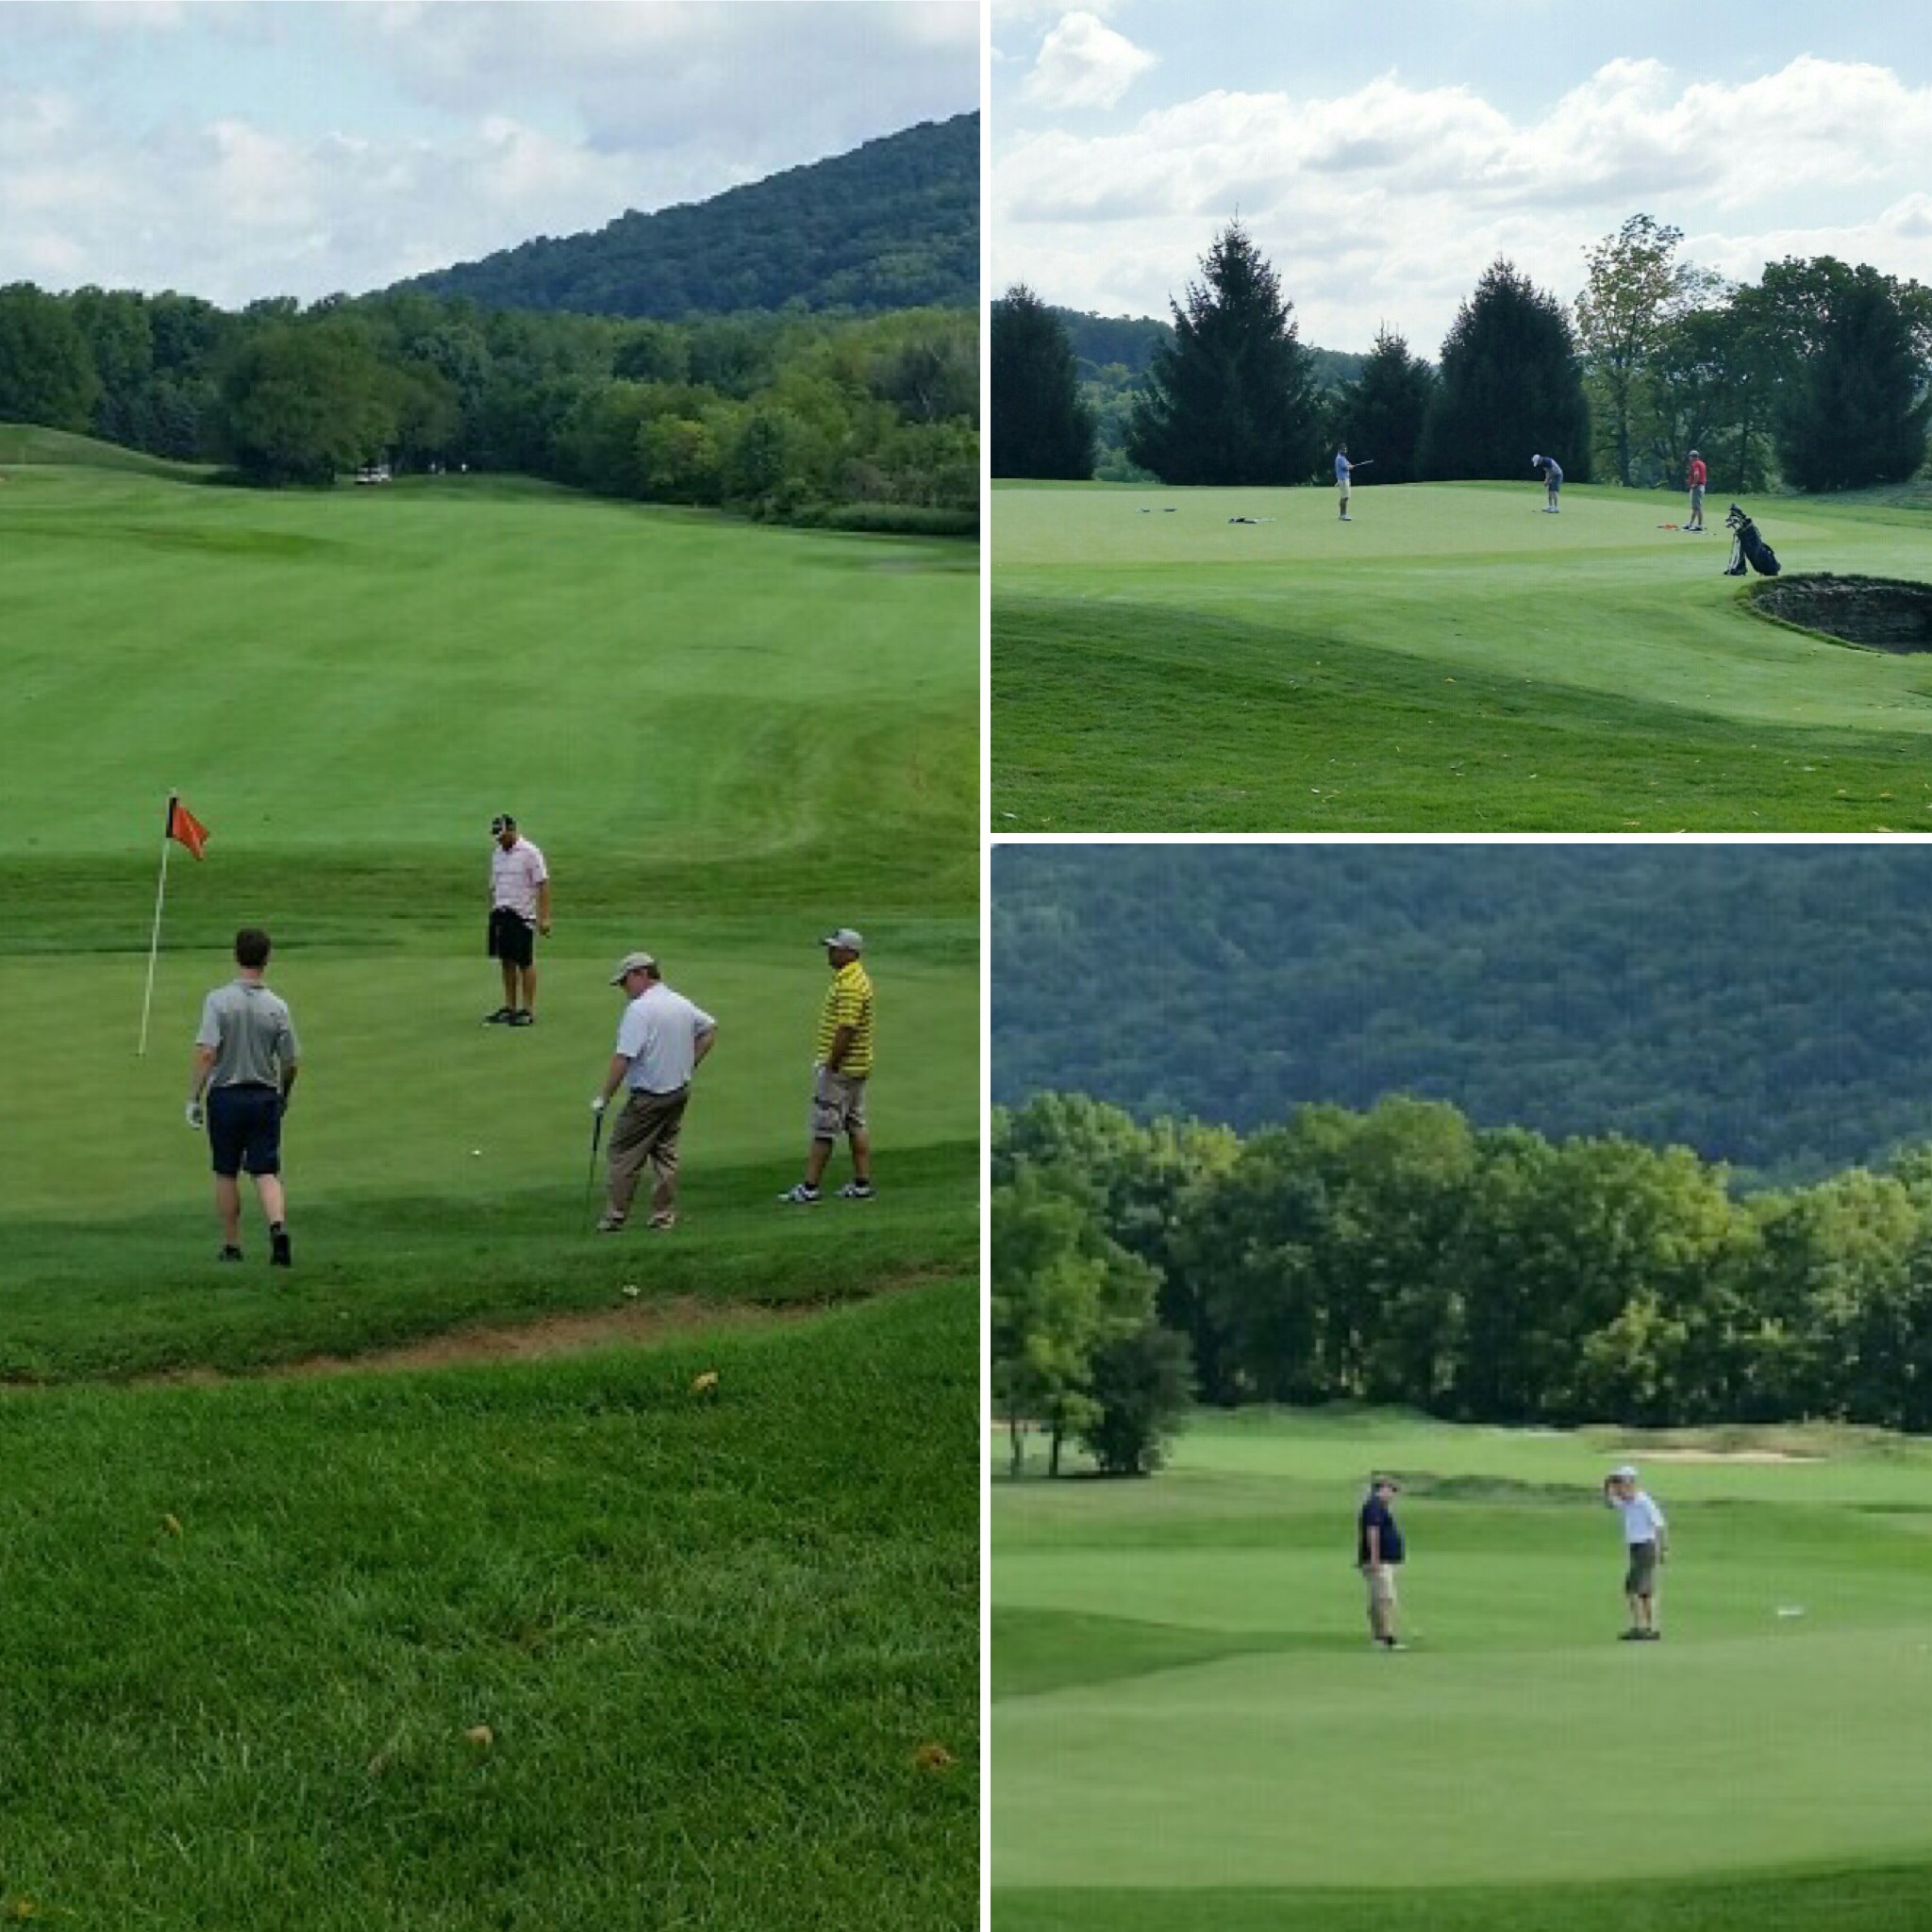 The Architects Golf Club, Friday, August 26, 2016. Lopatcong, New Jersey. Photos by: Lawrence J. Turco